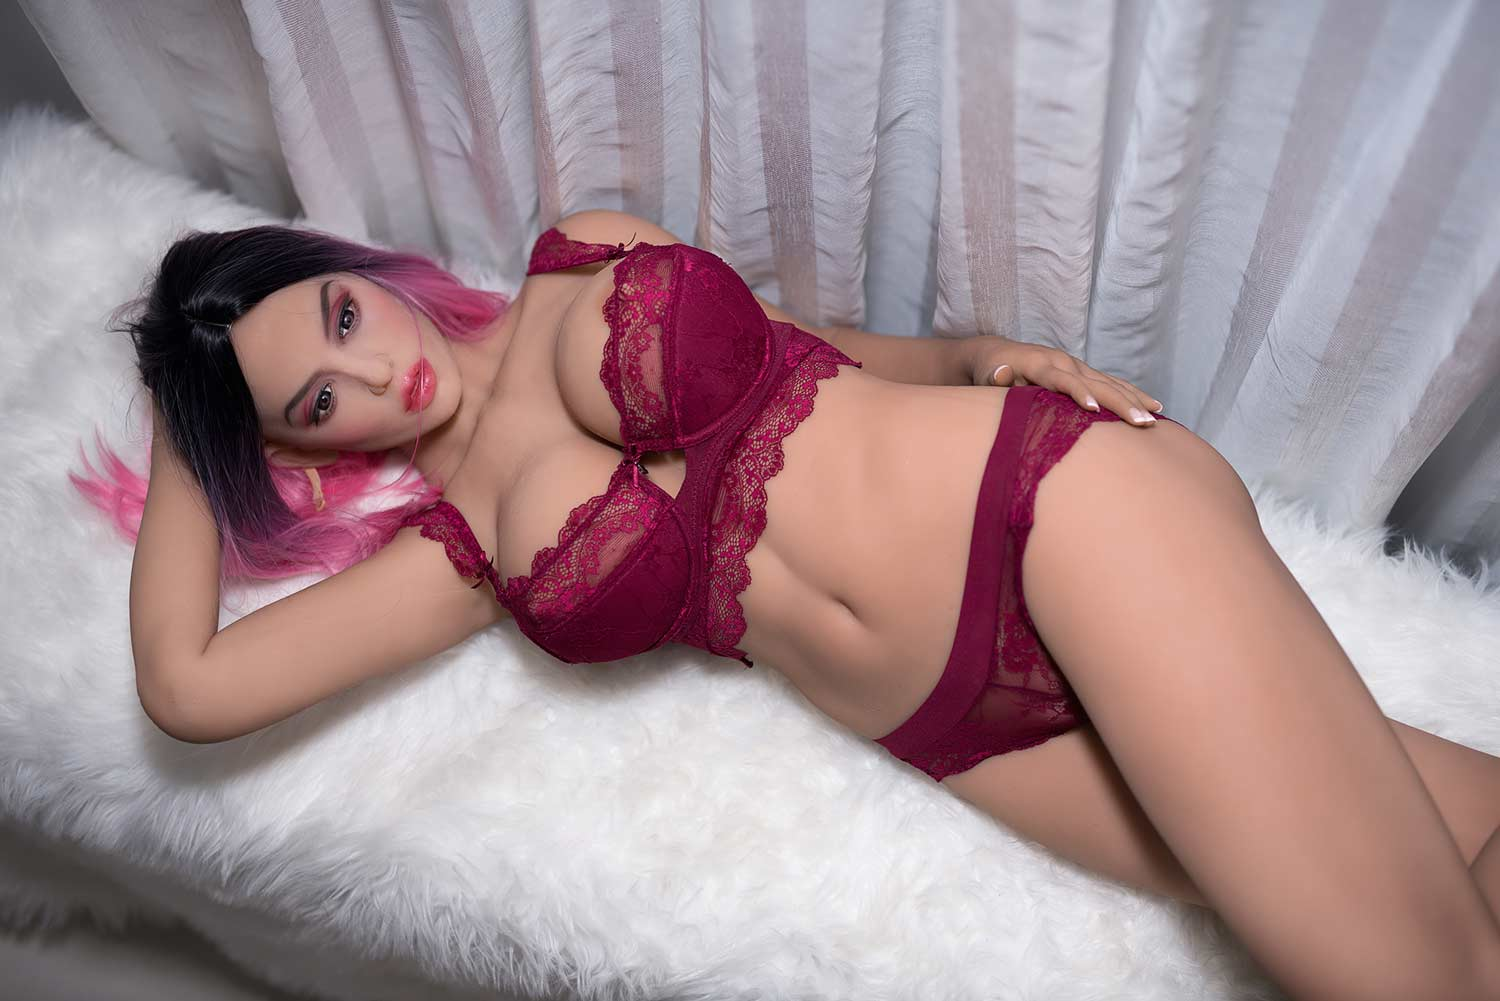 Big breasted sex doll lying on the sofa